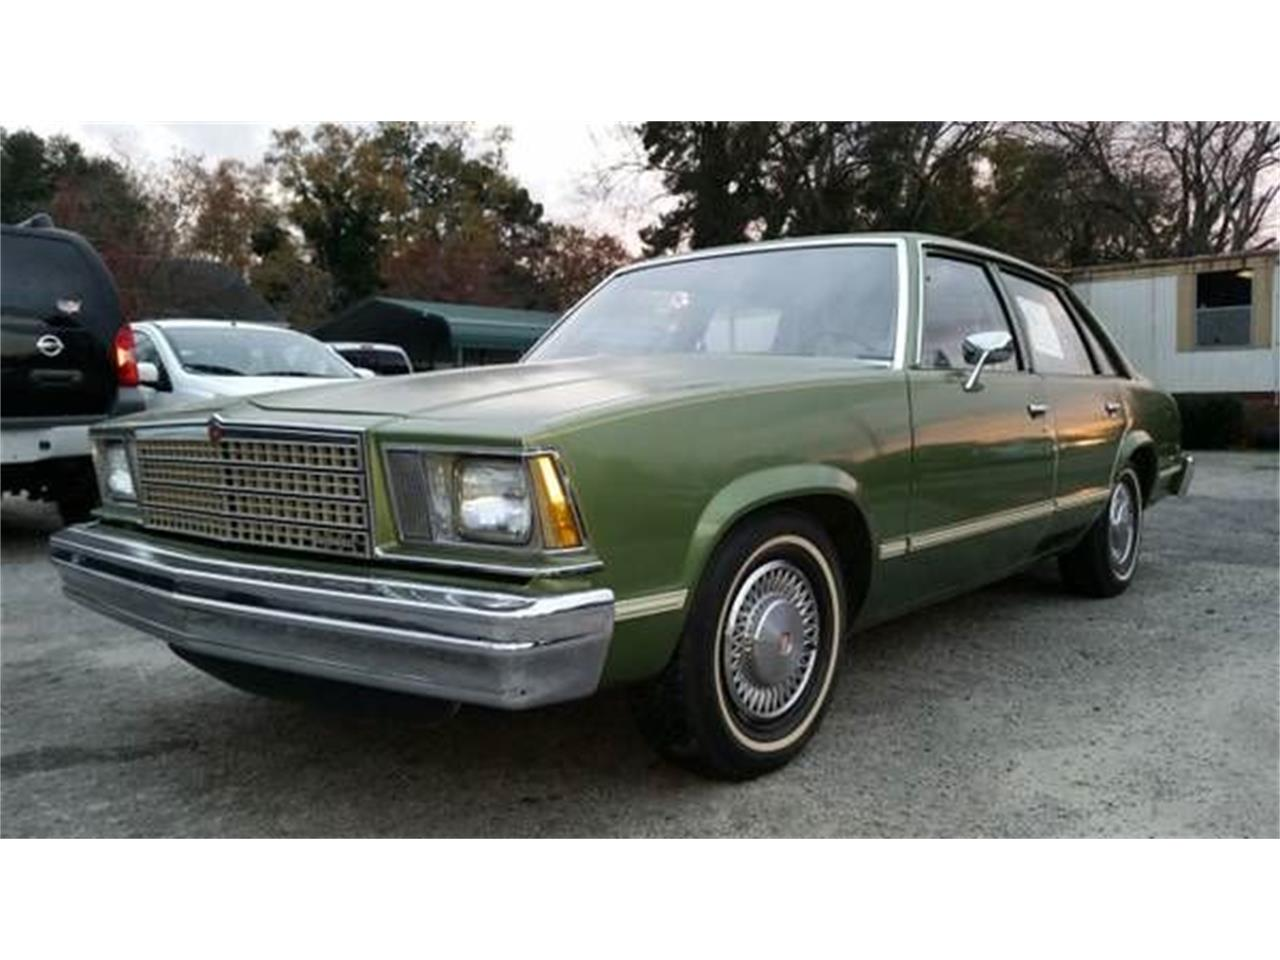 Totaled Cars For Sale >> 1979 Chevrolet Malibu for Sale | ClassicCars.com | CC-1114913